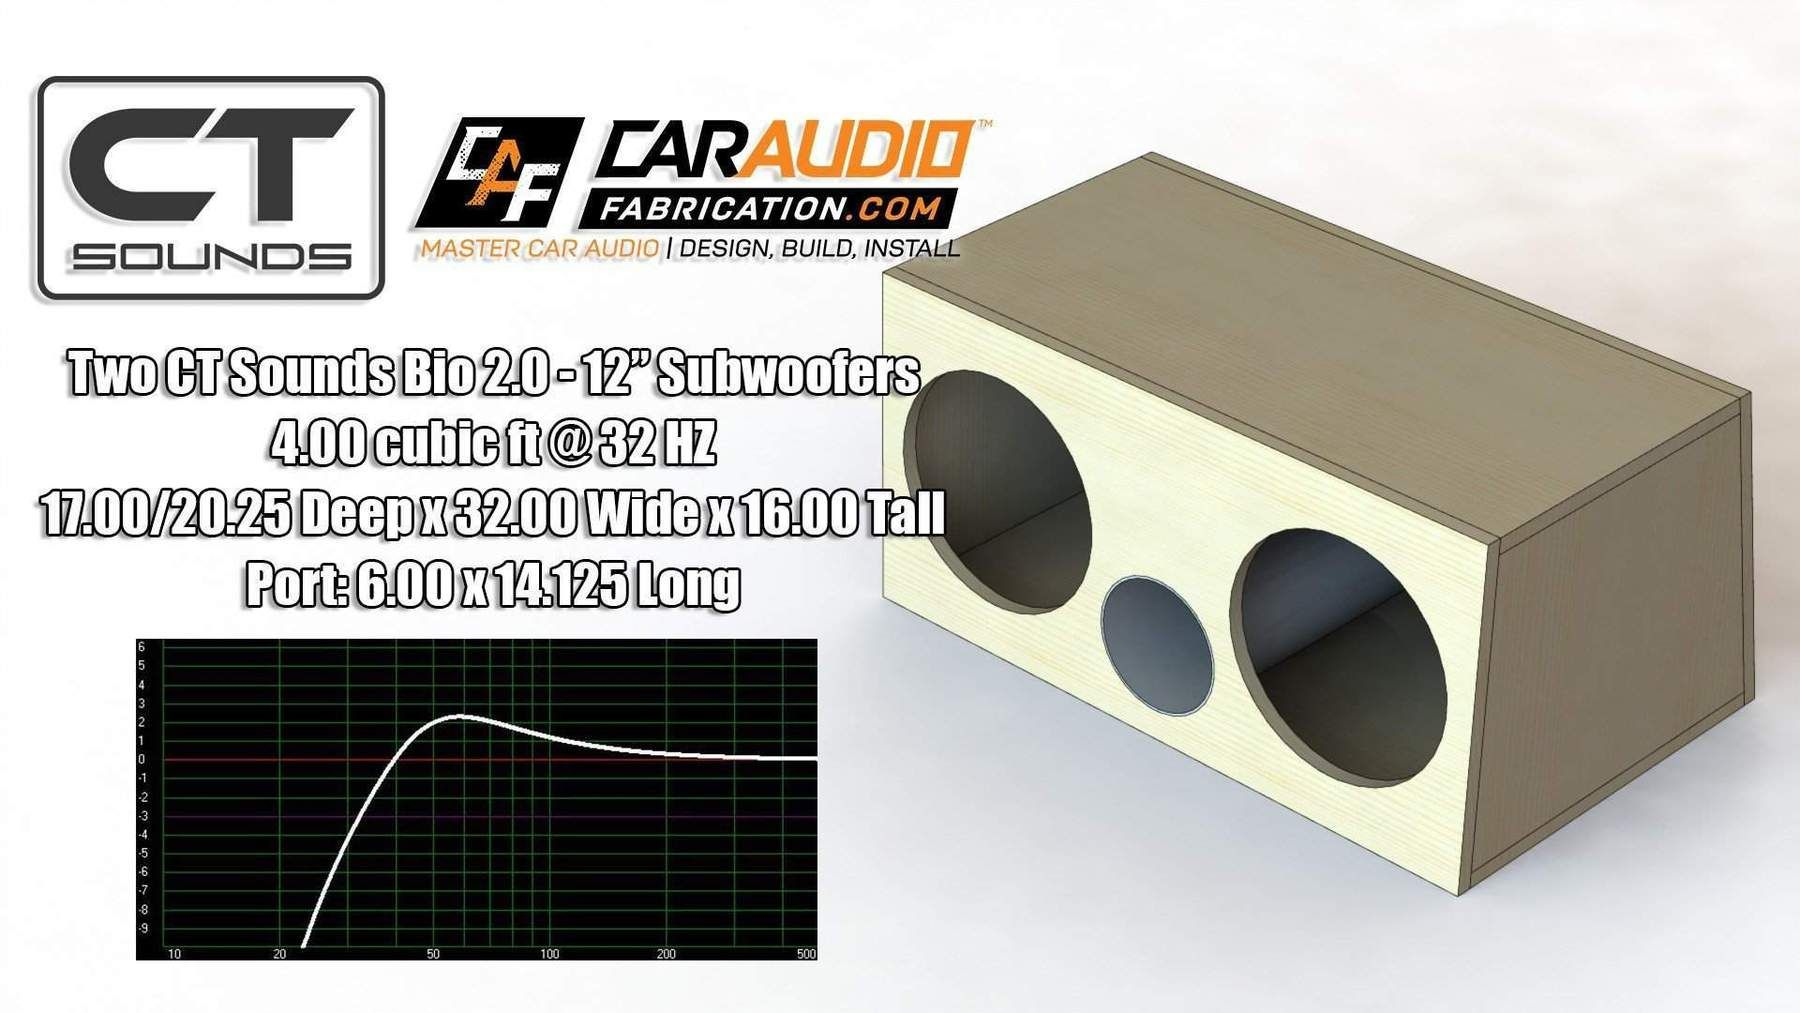 Dual 12 Inch Front PORTED Subwoofer Box Design (Bio 12